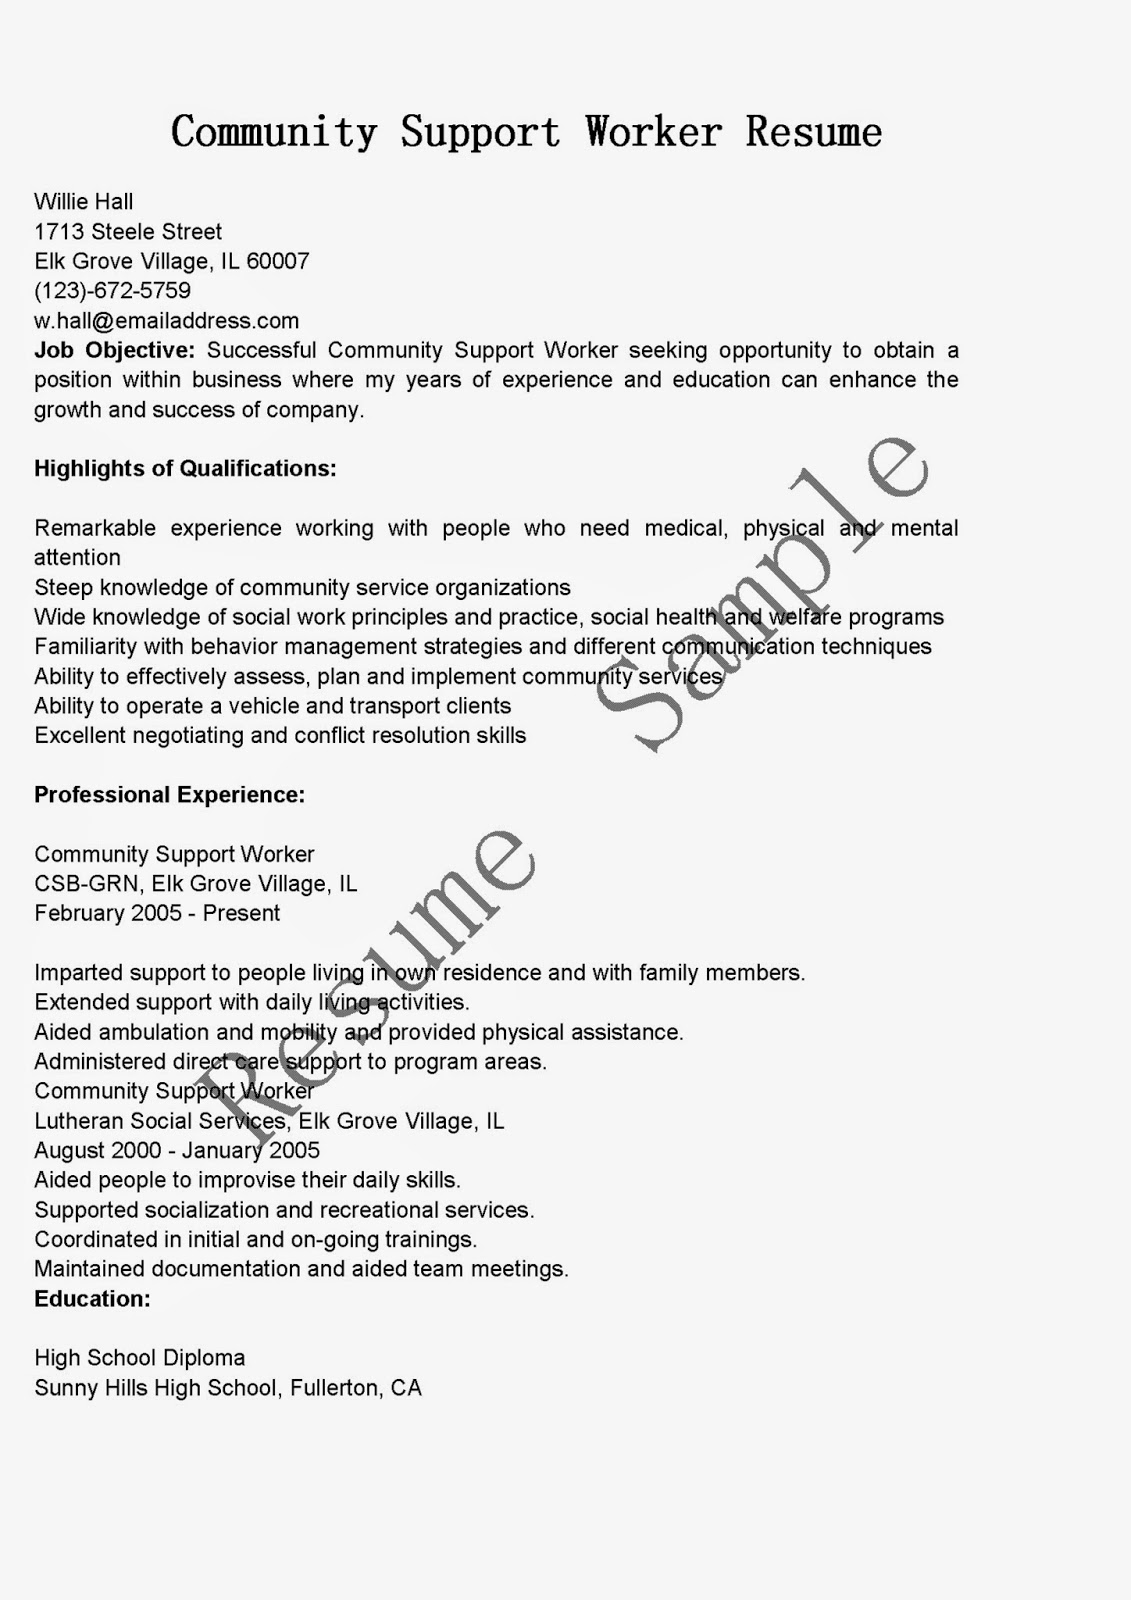 Resume samples community support worker resume sample for Cover letter for community support worker position